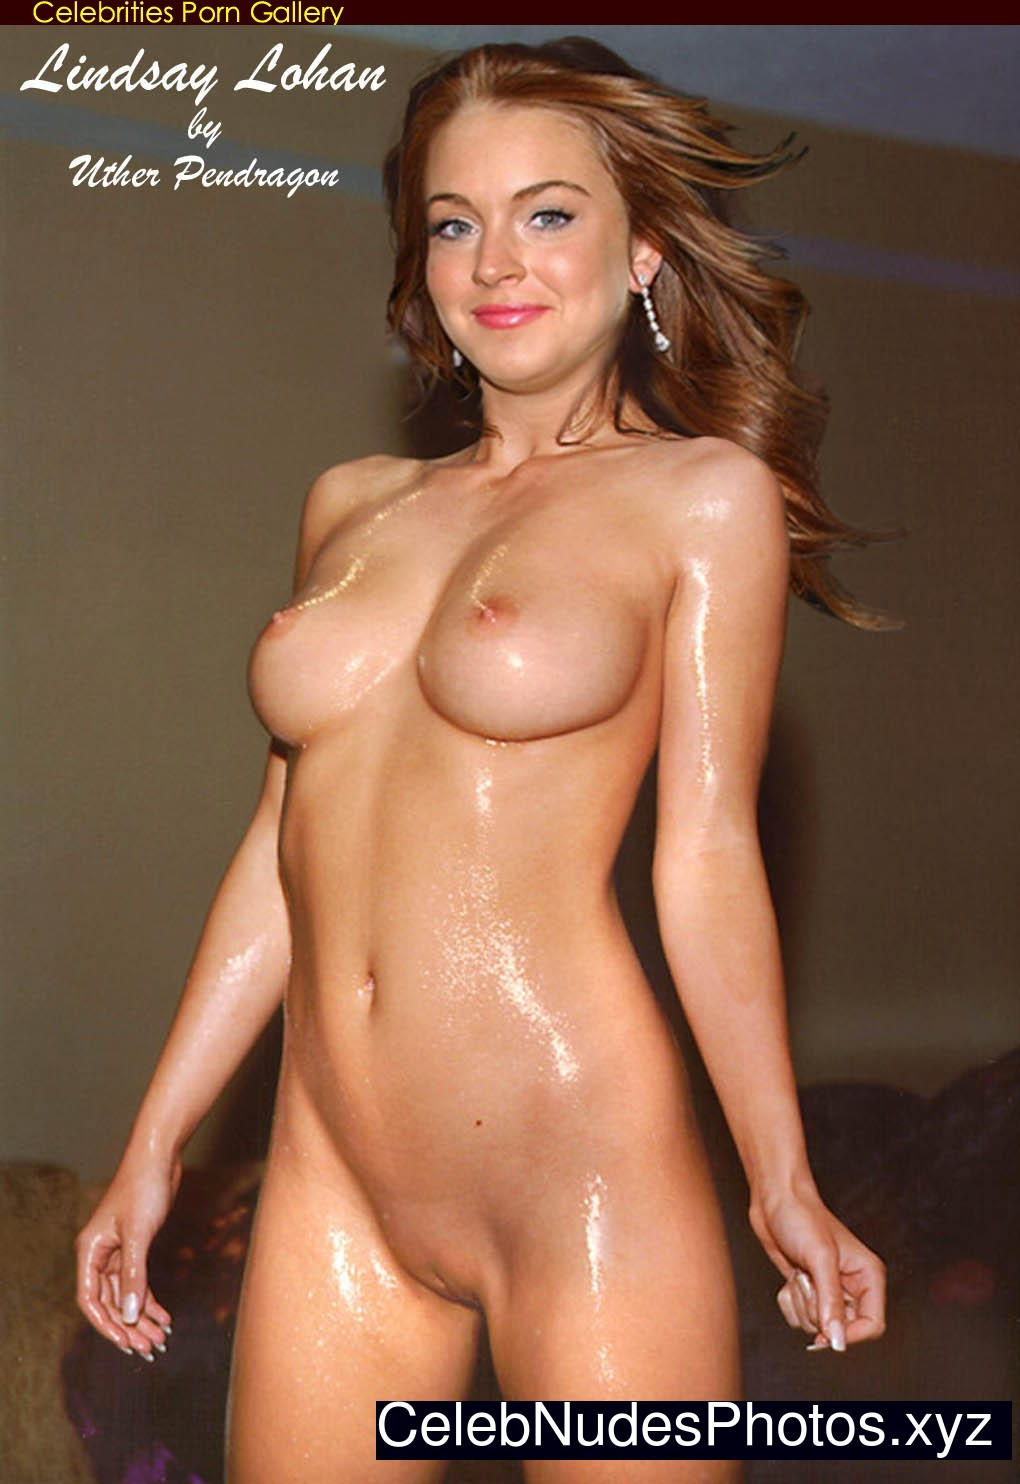 Young lindsay lohan nude pics apologise, but